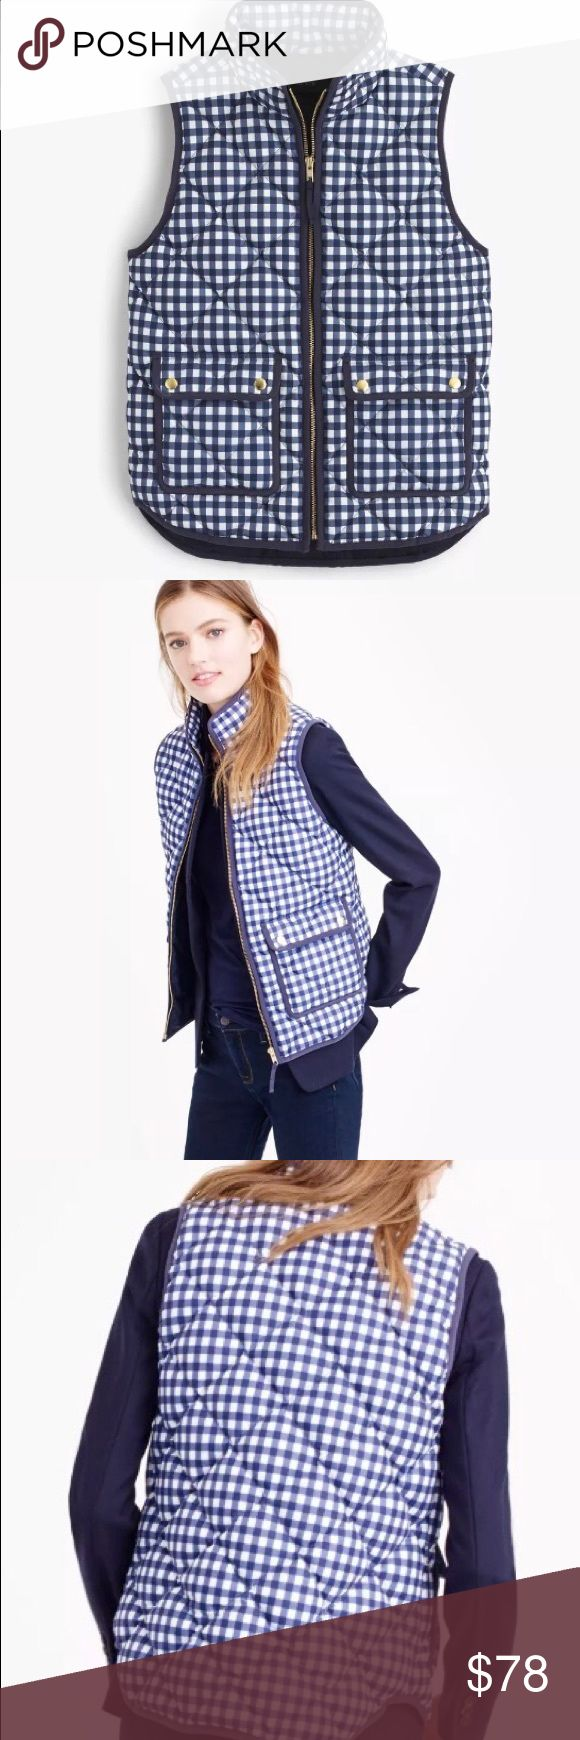 "J Crew Petite Sz L Excursion Gingham Puffer Vest J Crew Petite Excursion Gingham Vest  NWT  THIS VEST IS NOT FROM J CREW FACTORY  Navy Ivory Multi  MSRP $138  'Lightweight down vest that's compact and easy to layer but still  warm enough to keep chilly weather at bay.   Classic fit - not too loose and not too tight. Hits at hip. Body length = 22-7/8""  Down filled poly Standing collar Snap front with hidden zip closure Pockets Lined   SIZE: PL  J Crew Body Measurements for Size PL  Bust = 38""…"